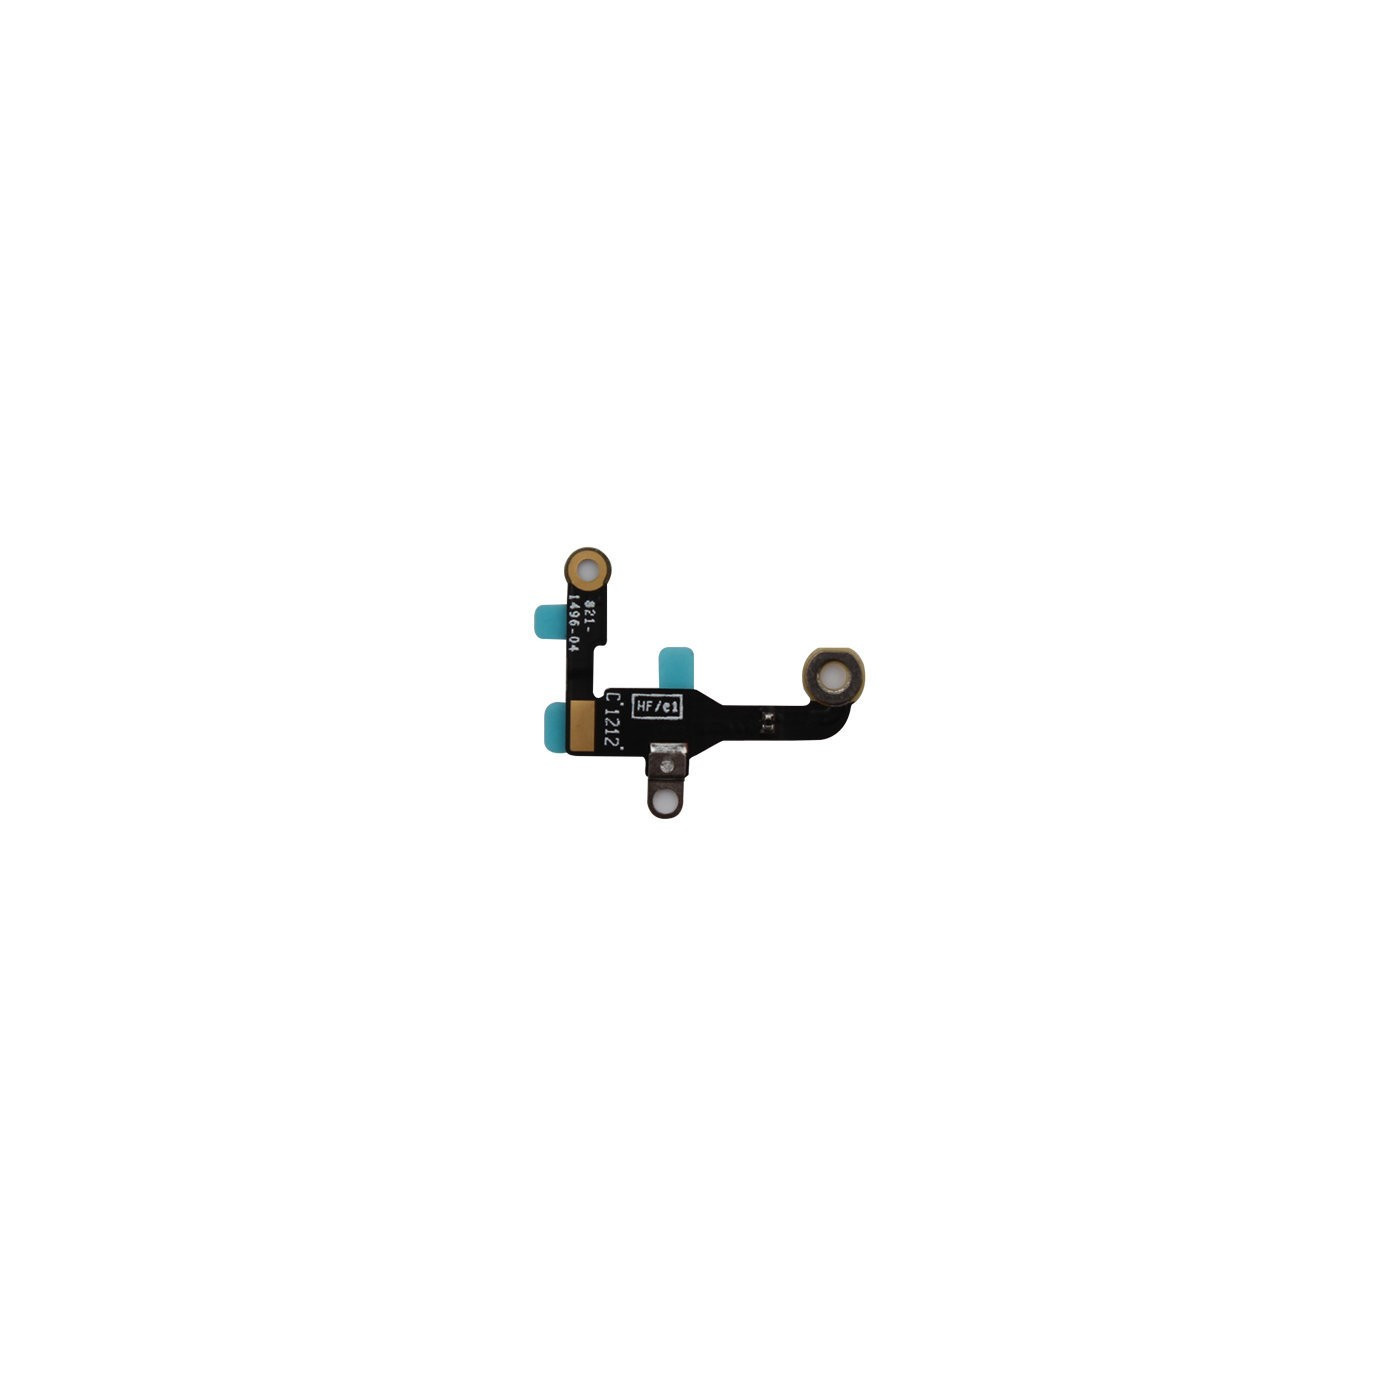 Flat flex cable cell phone signal antenna connection for iPhone 5S